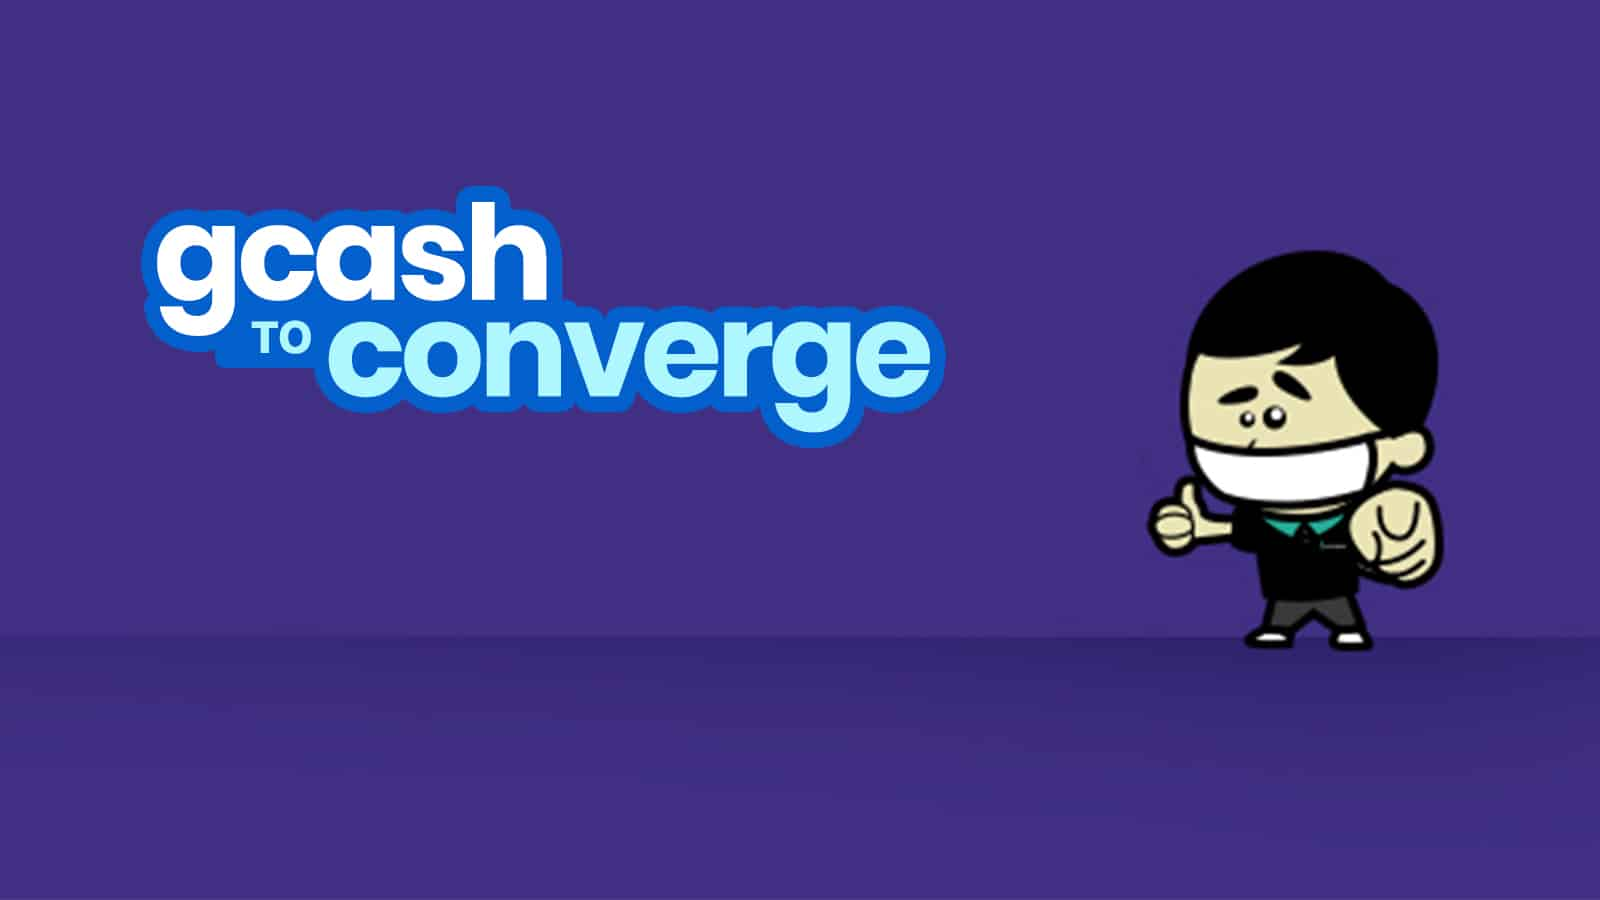 Gcash To Converge How To Pay Converge And Other Internet Cable Bills The Poor Traveler Itinerary Blog